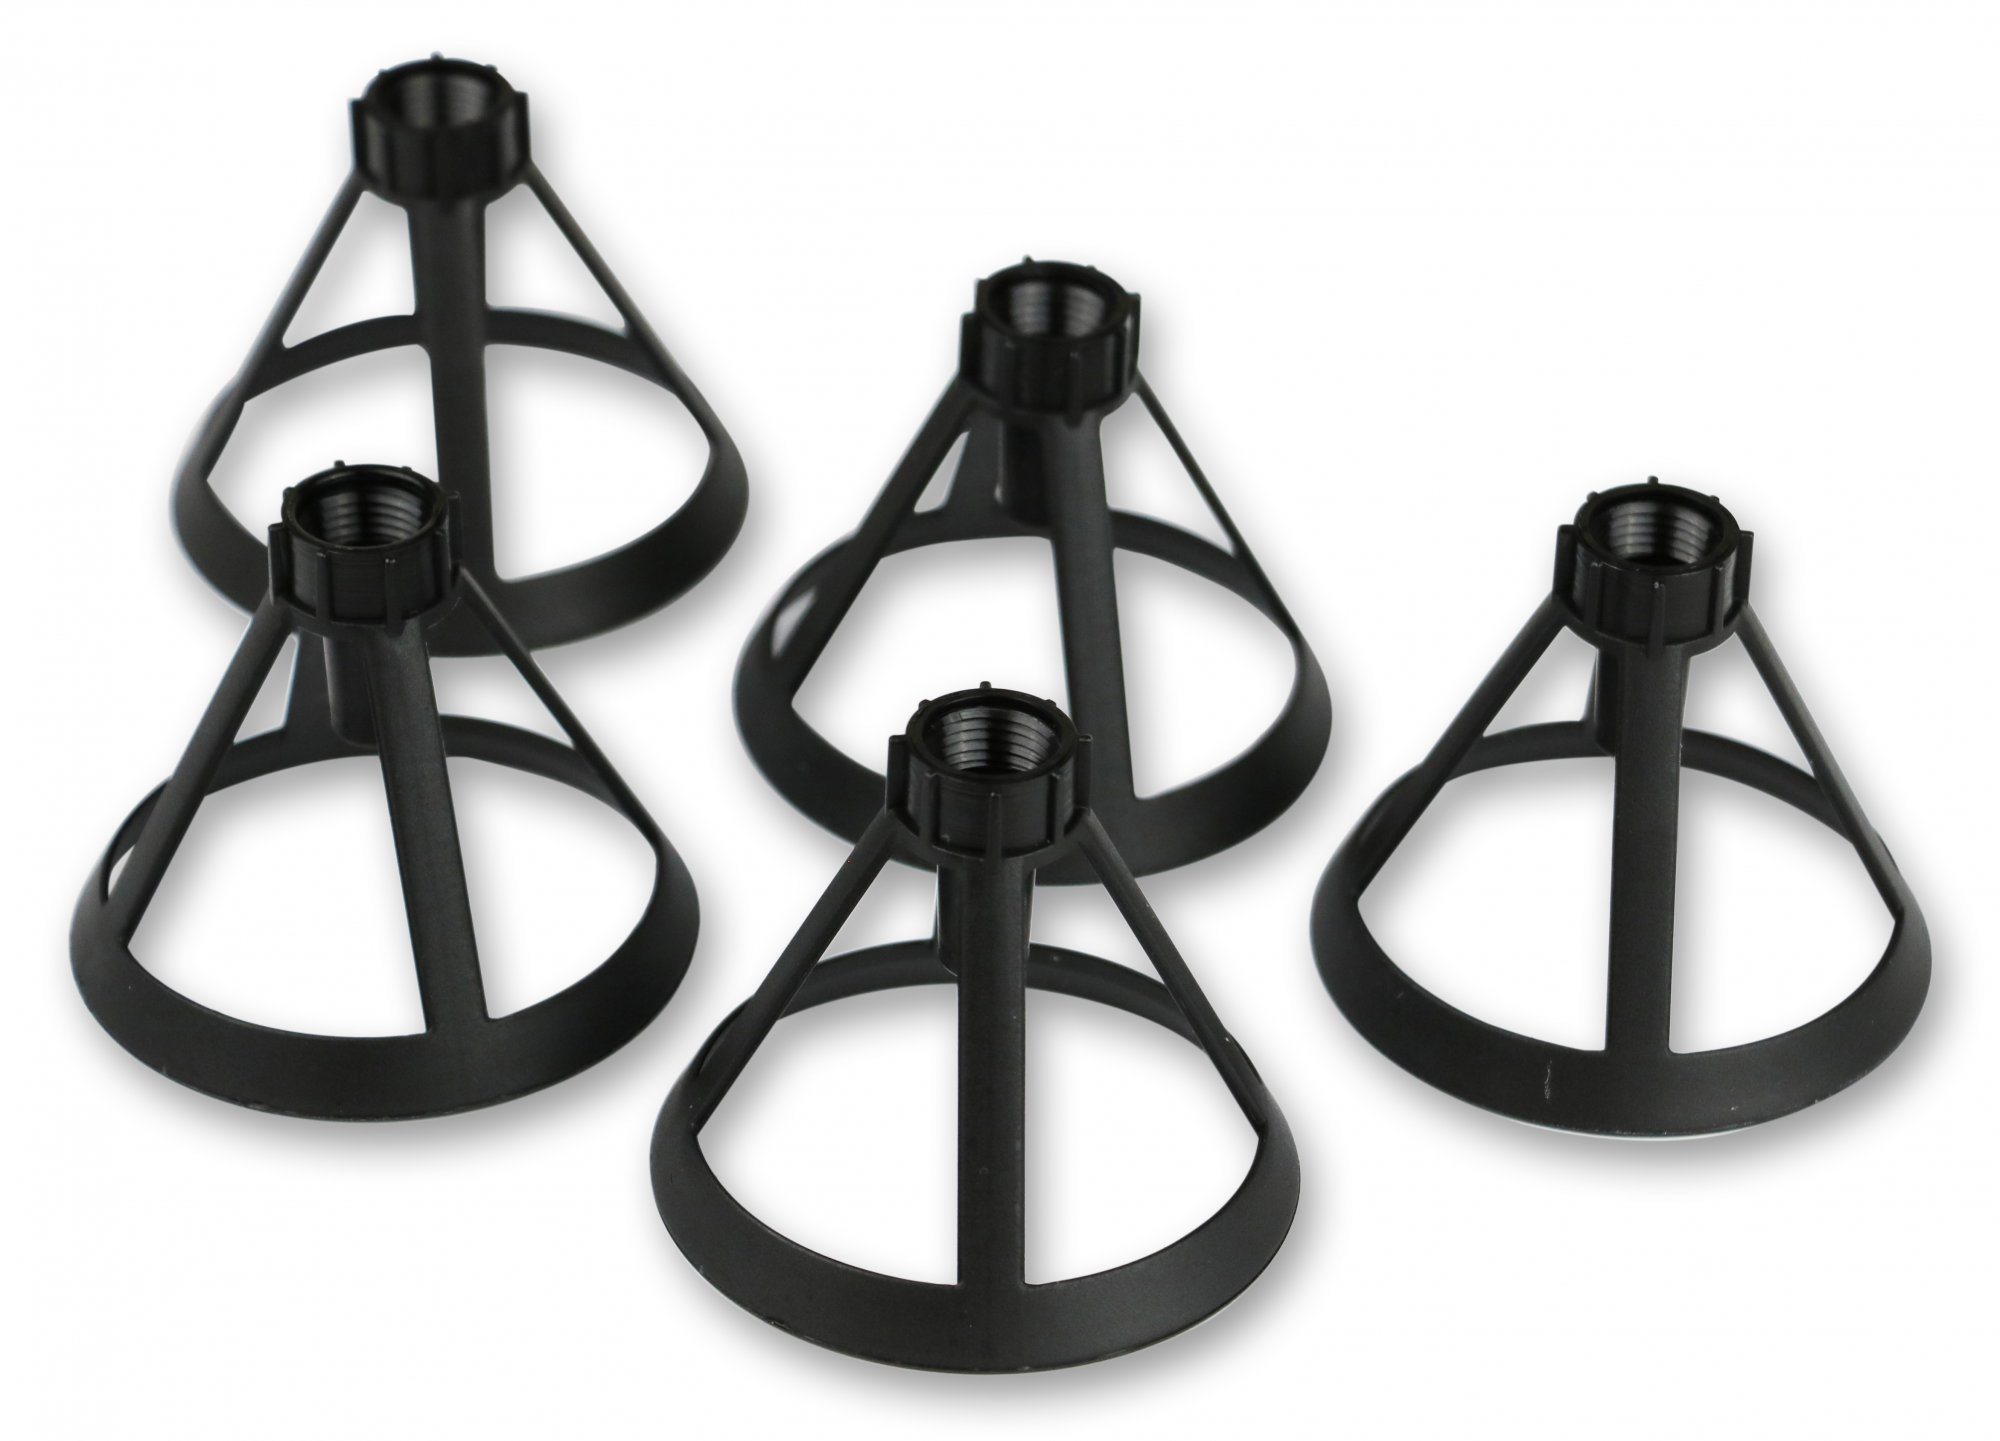 Safety Spouts - Threaded, 5-pk (SS-5.1)